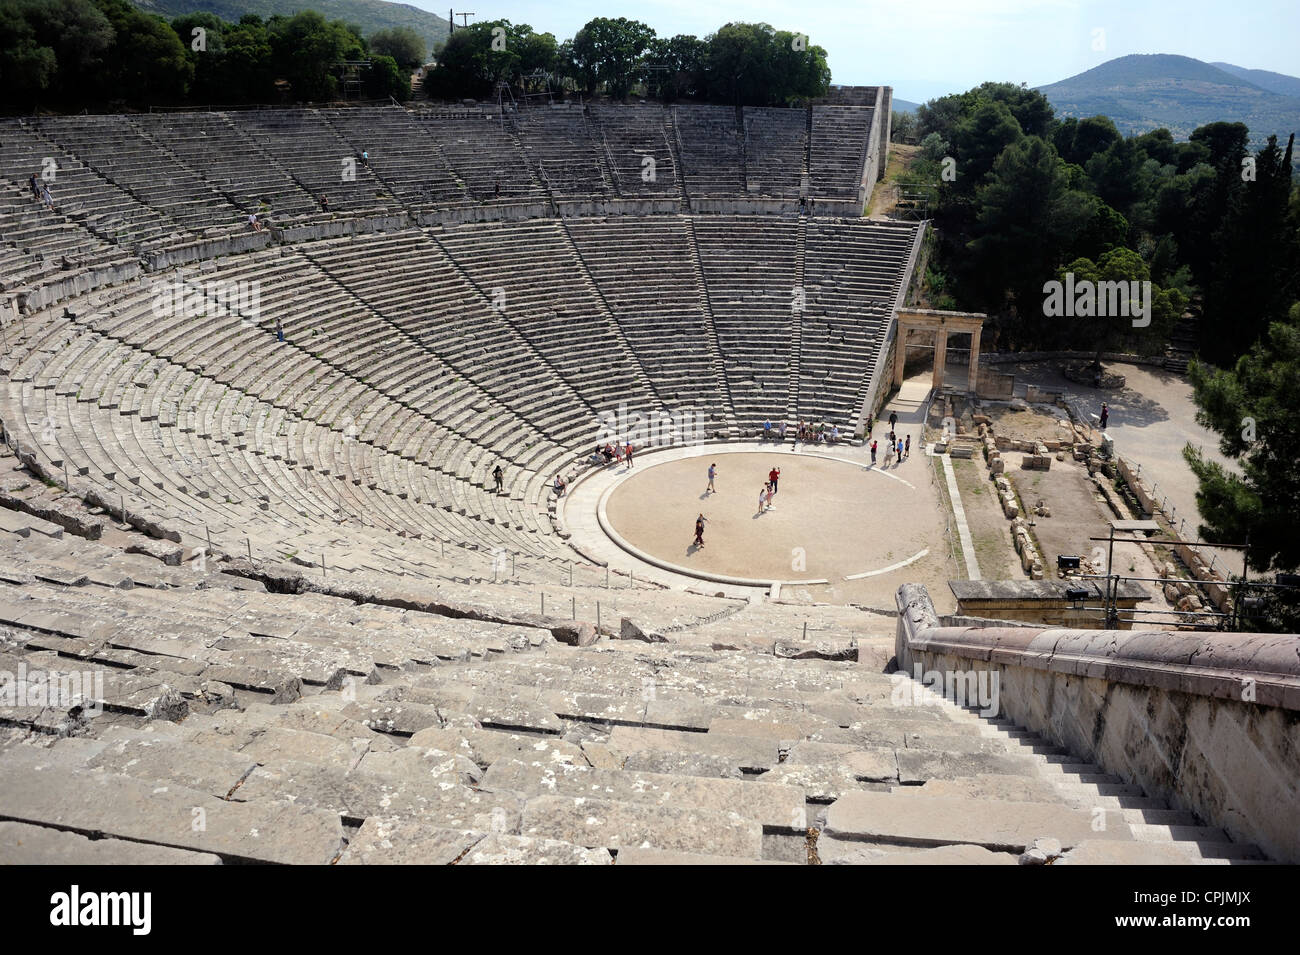 Peloponnese, Greece, Epidaurus ancient theatre - Stock Image